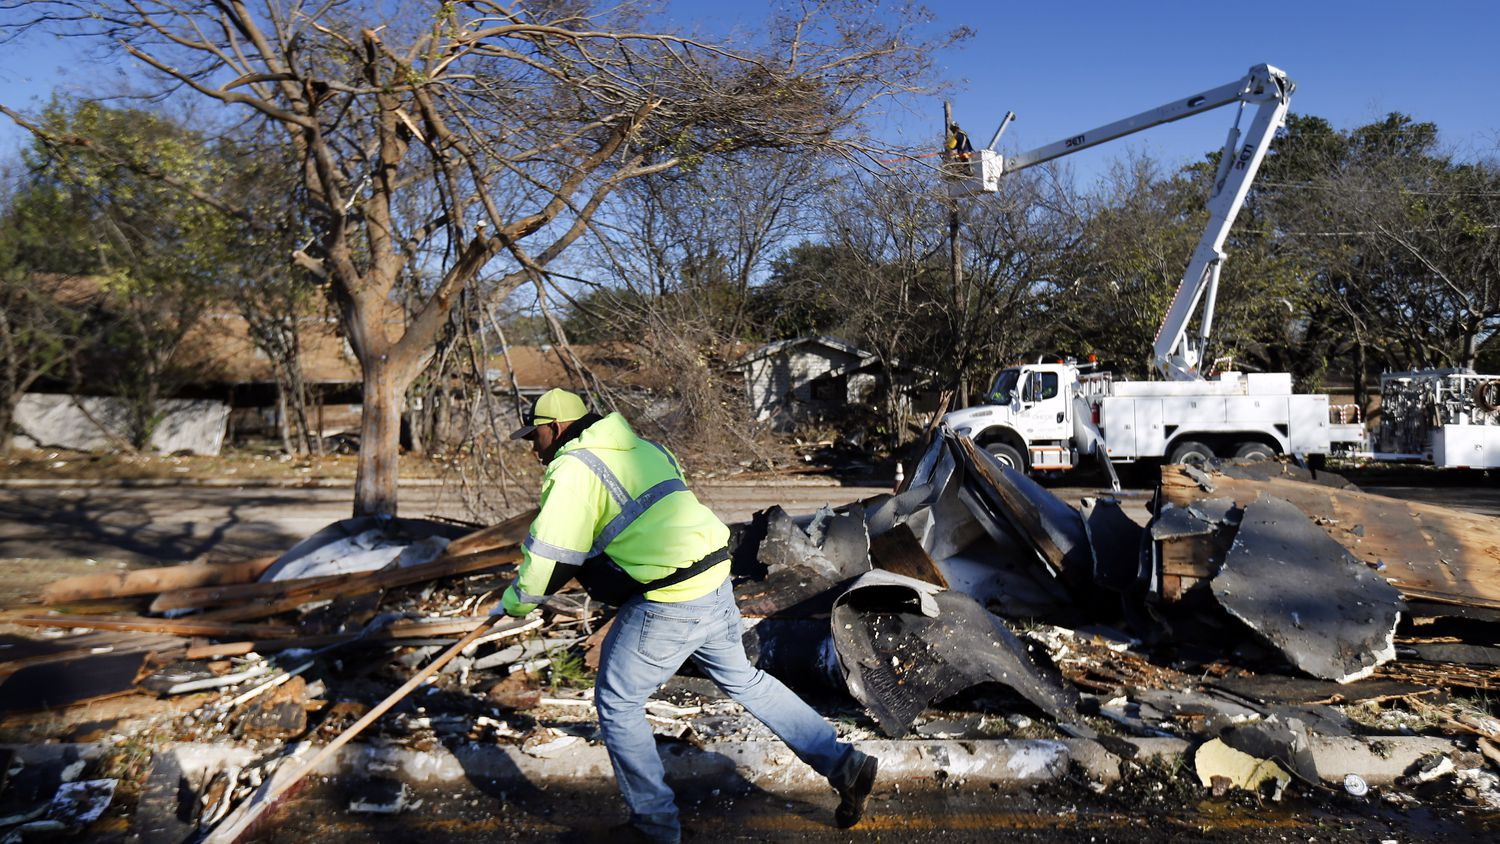 A City of Arlington street crewman cleans up debris from The Mirage Apartments complex along Pioneer Parkway in Arlington, Wednesday, November 24, 2020, after a tornado-warned storm torn the roofing off. Air conditioner units and other structural debris were scattered across the property and street. The crew is trying to get the major thoroughfare open.